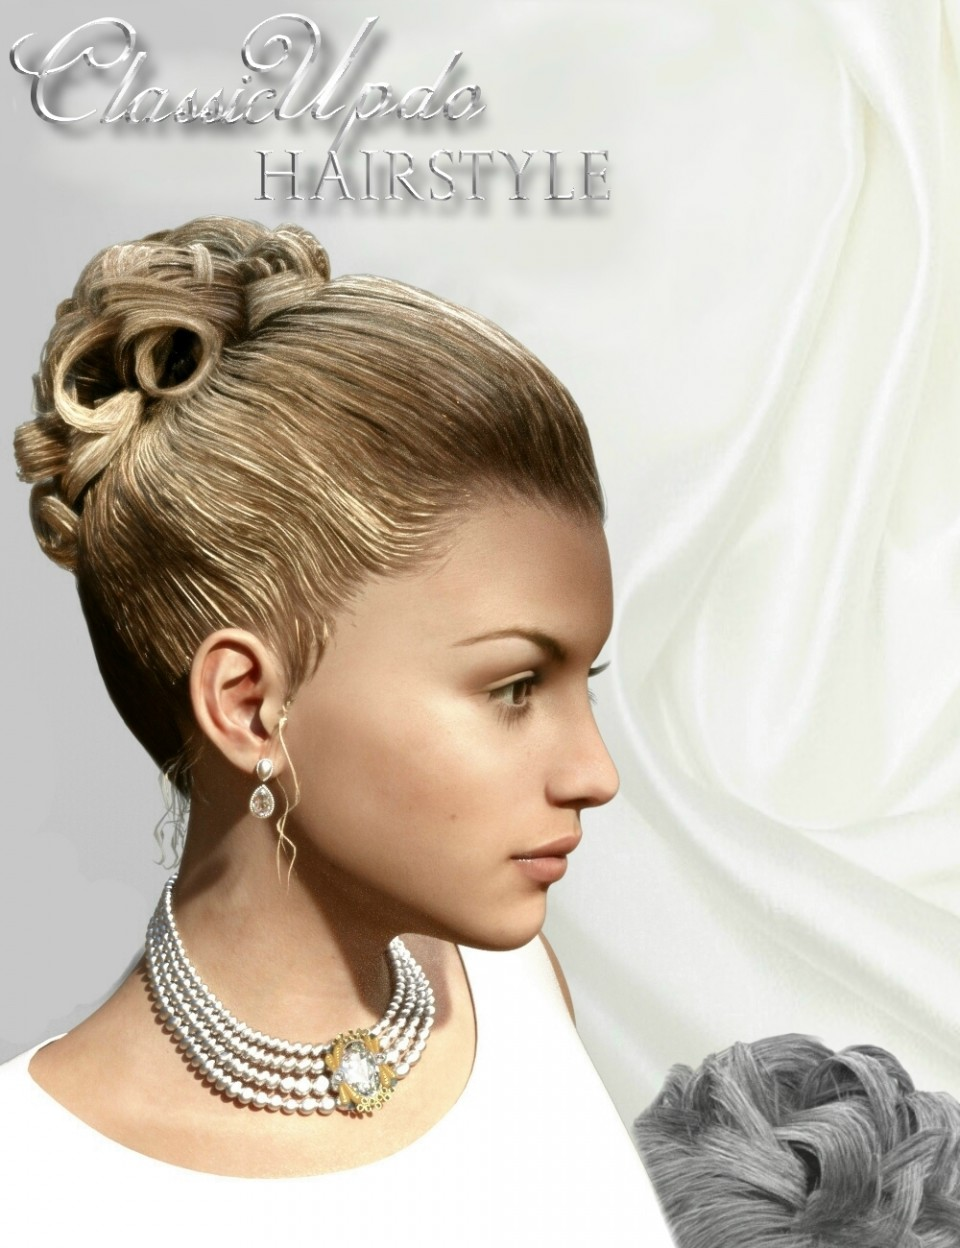 Classic Updo Hairstyle for Genesis 3 Female(s)_DAZ3D下载站